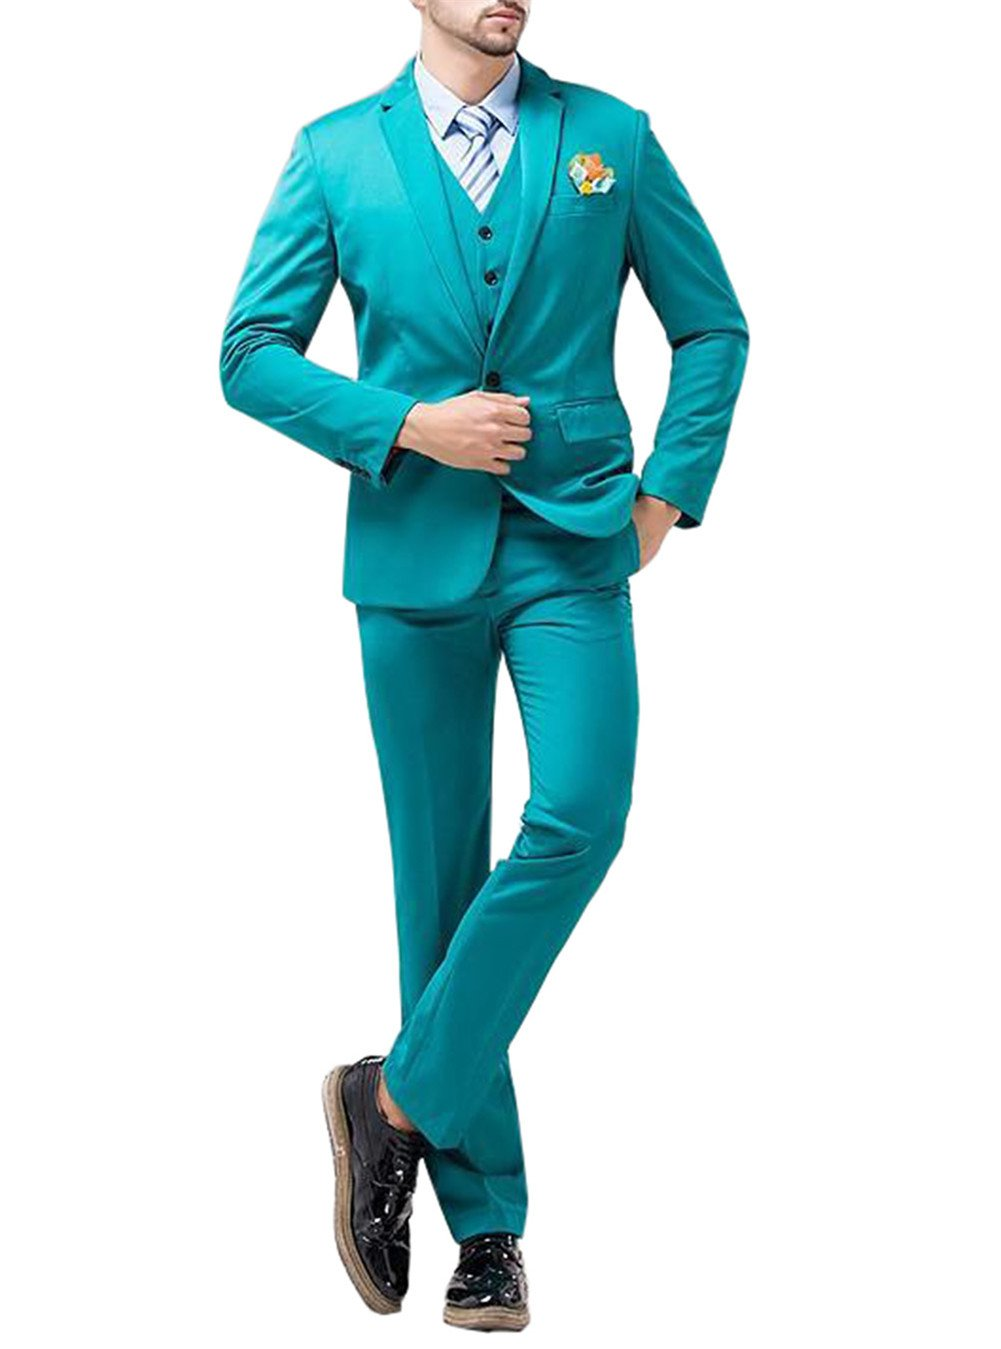 GEORGE BRIDE Men's Casual Blazer Party Suit Groomsman's Suits 11 Color to Choose,XL,Turquoise